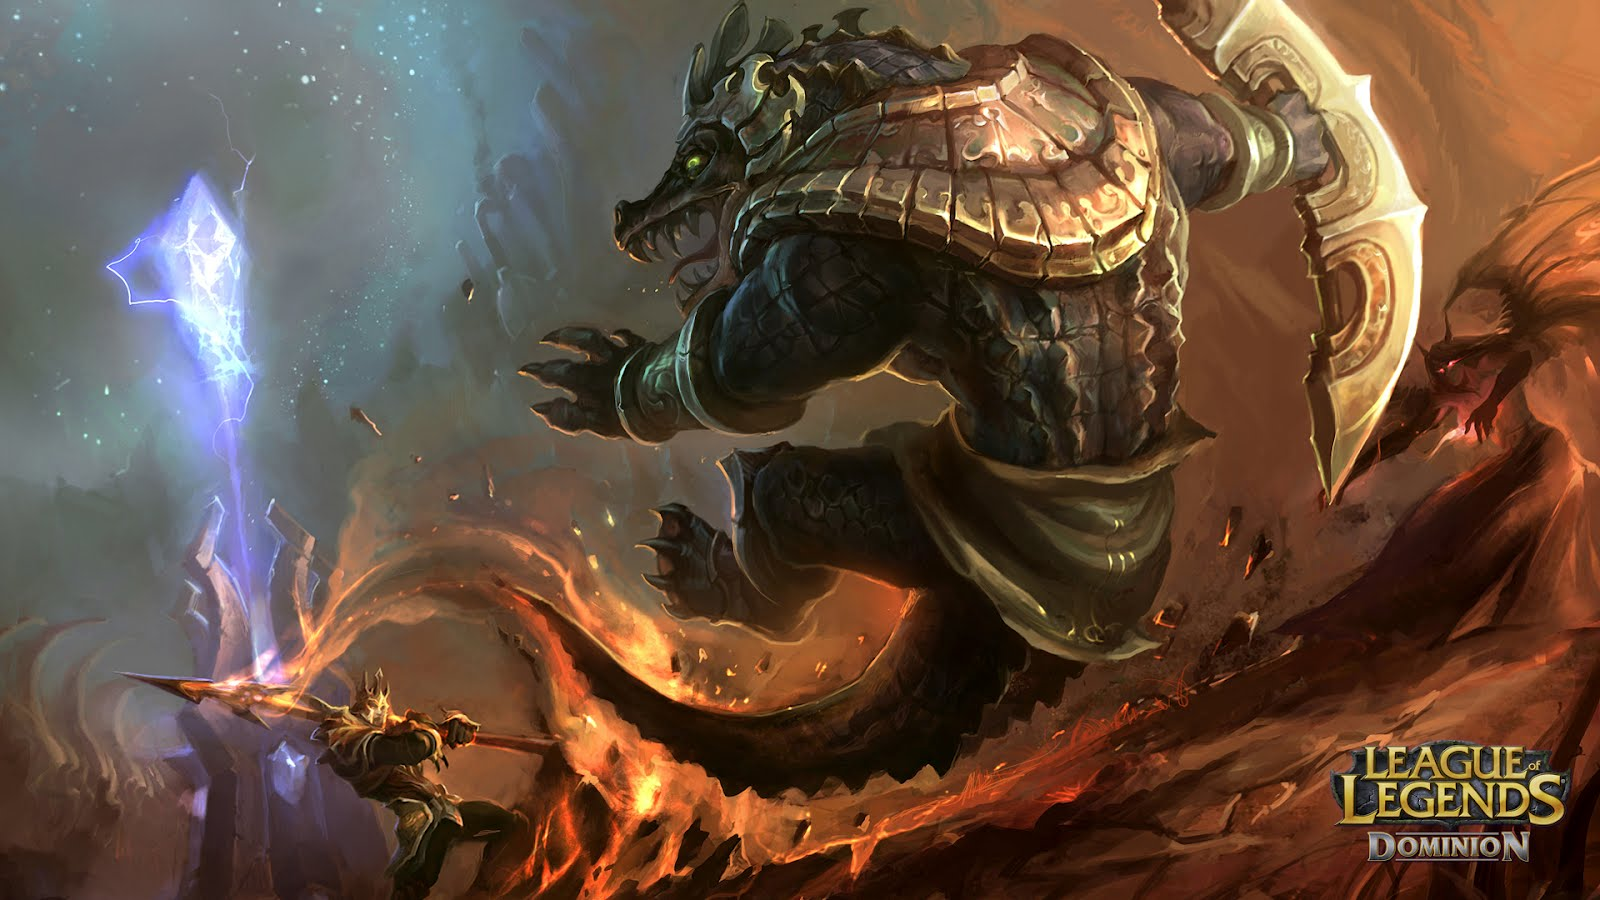 Dominion League Of Legends Wallpaper League Of Legends Dominion